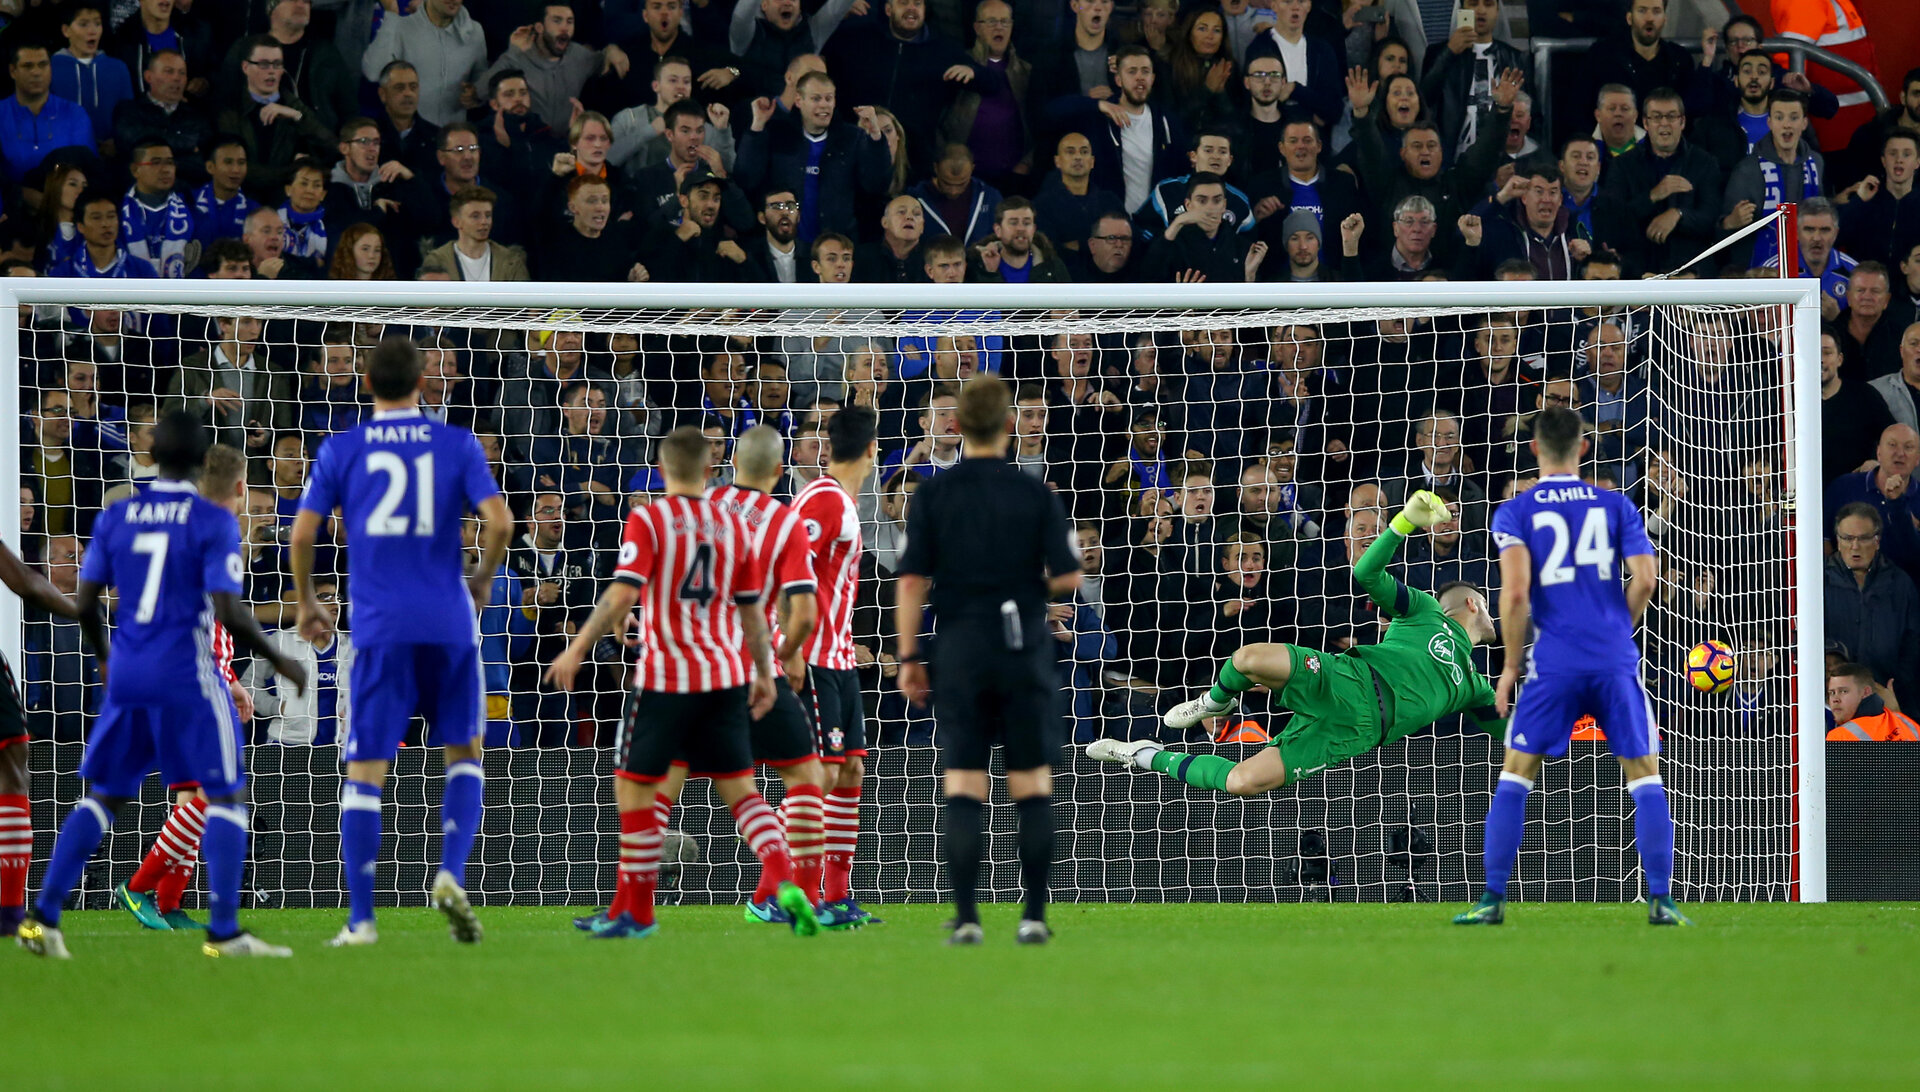 Diego Costa beats Fraser Forster to score Chelsea's second during the Premier League match between Southampton and Chelsea at St Mary's Stadium, Southampton, England on 30 October 2016. Photo by Matt Watson/SFC/Digital South.